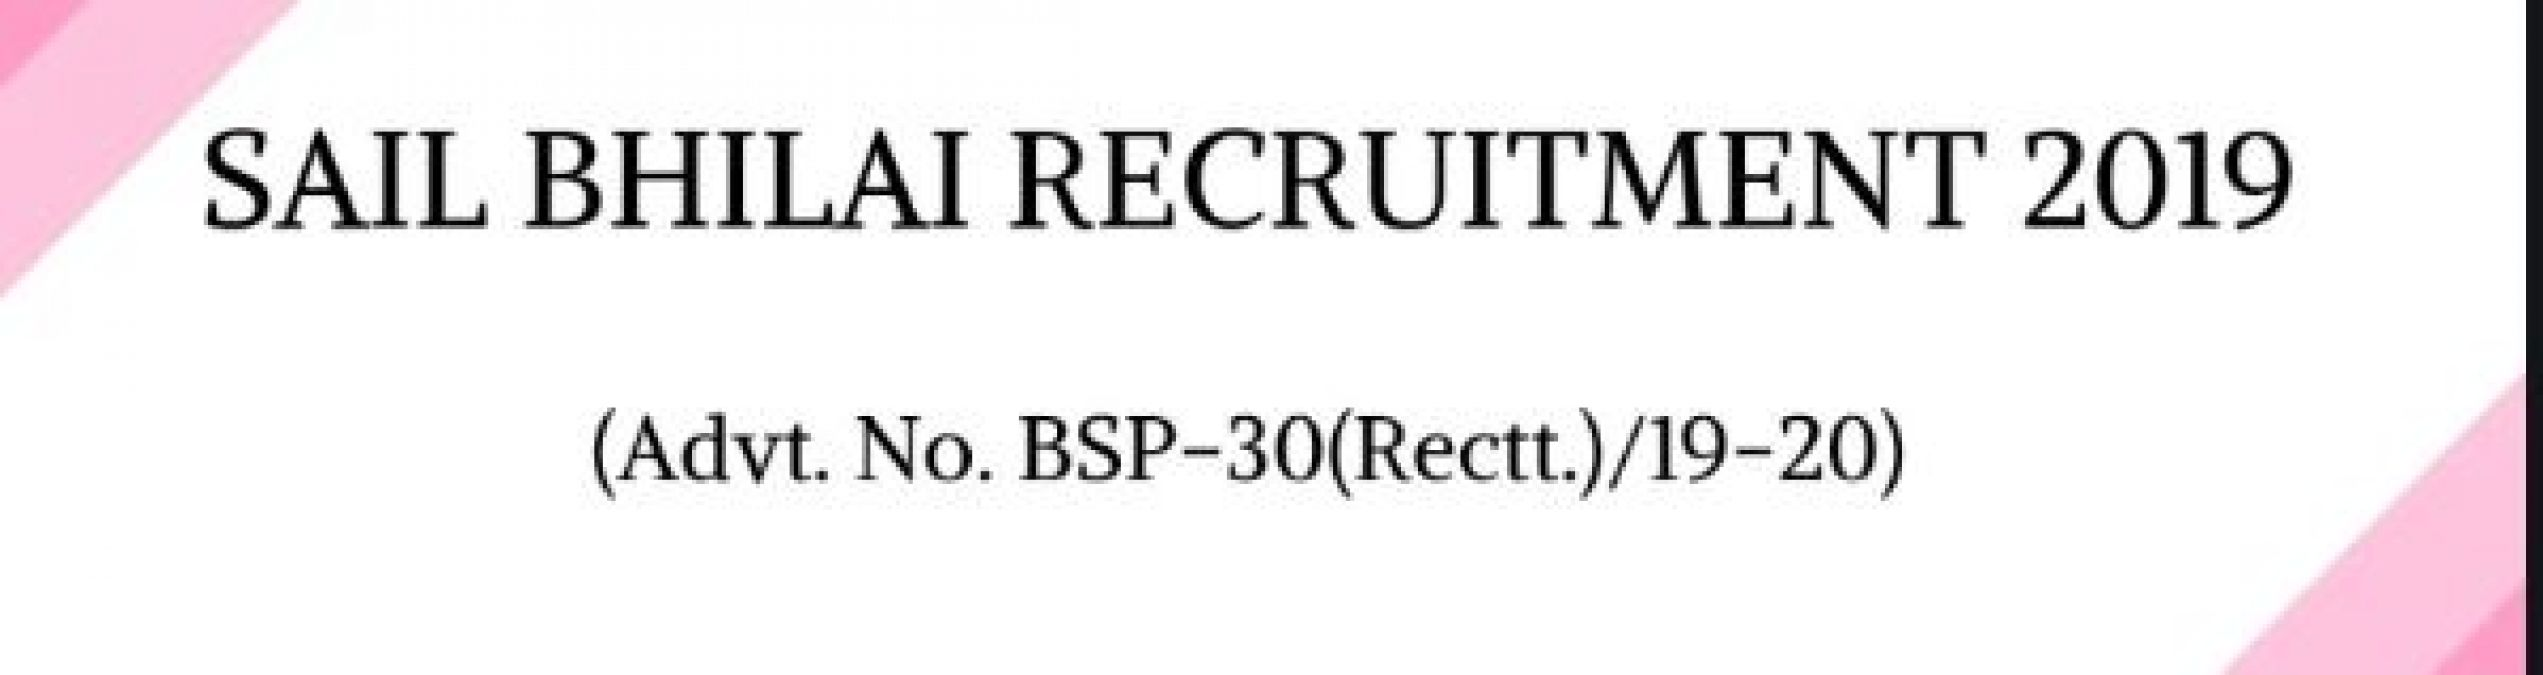 Recruitments for several positions in SAIL Bhilai, read details